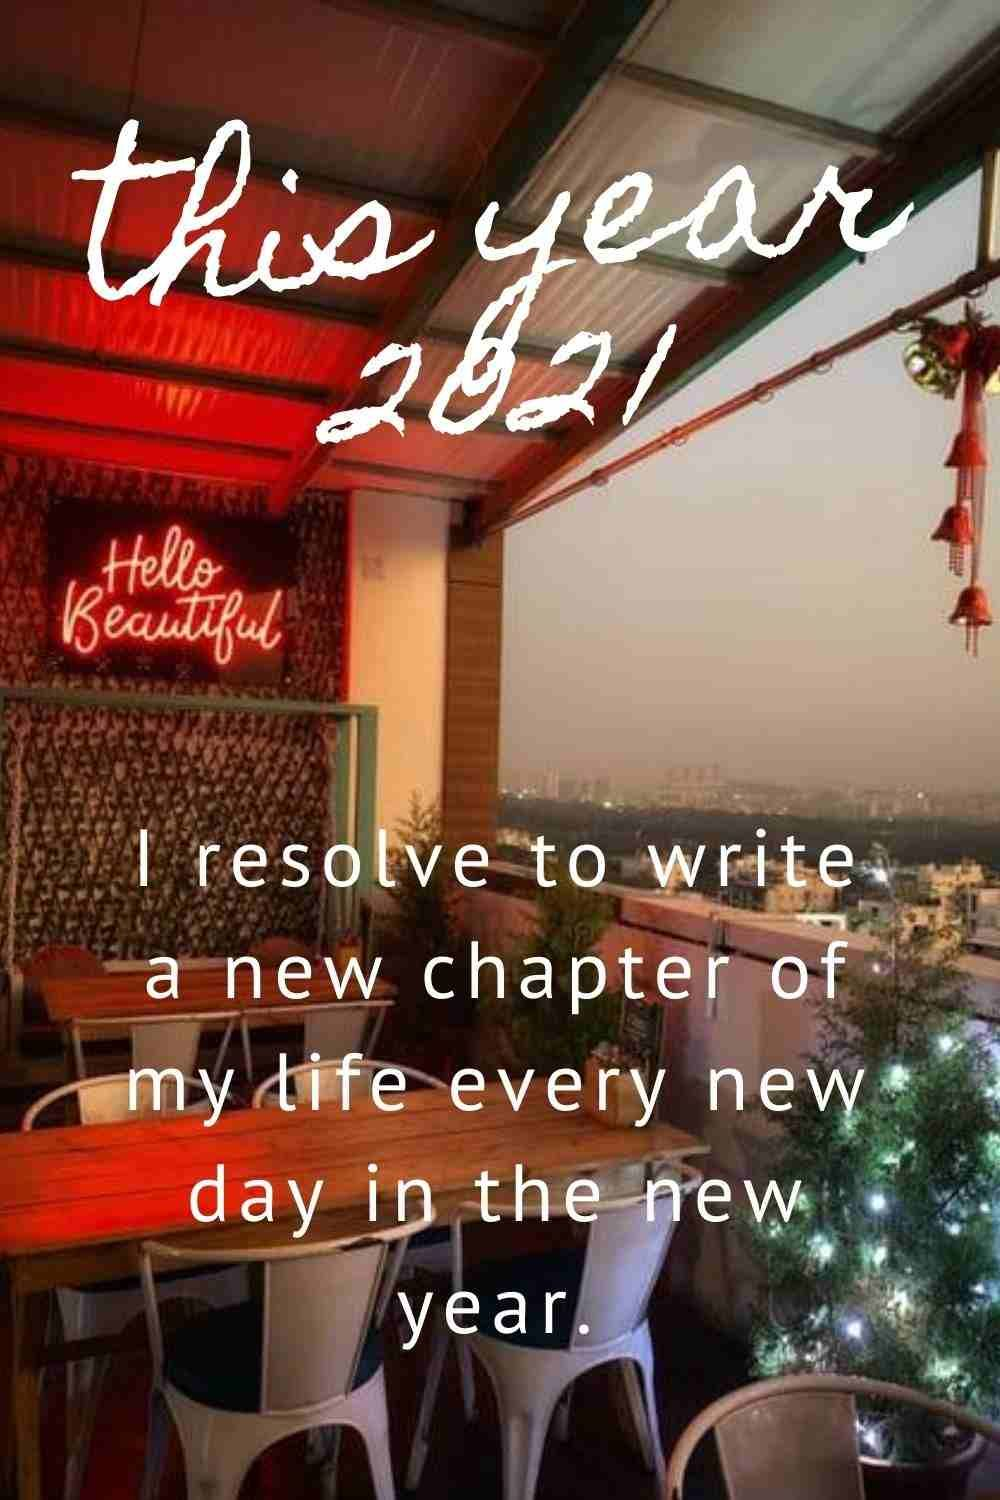 Happy new year sayings 2021 Messages in 2020 Happy new